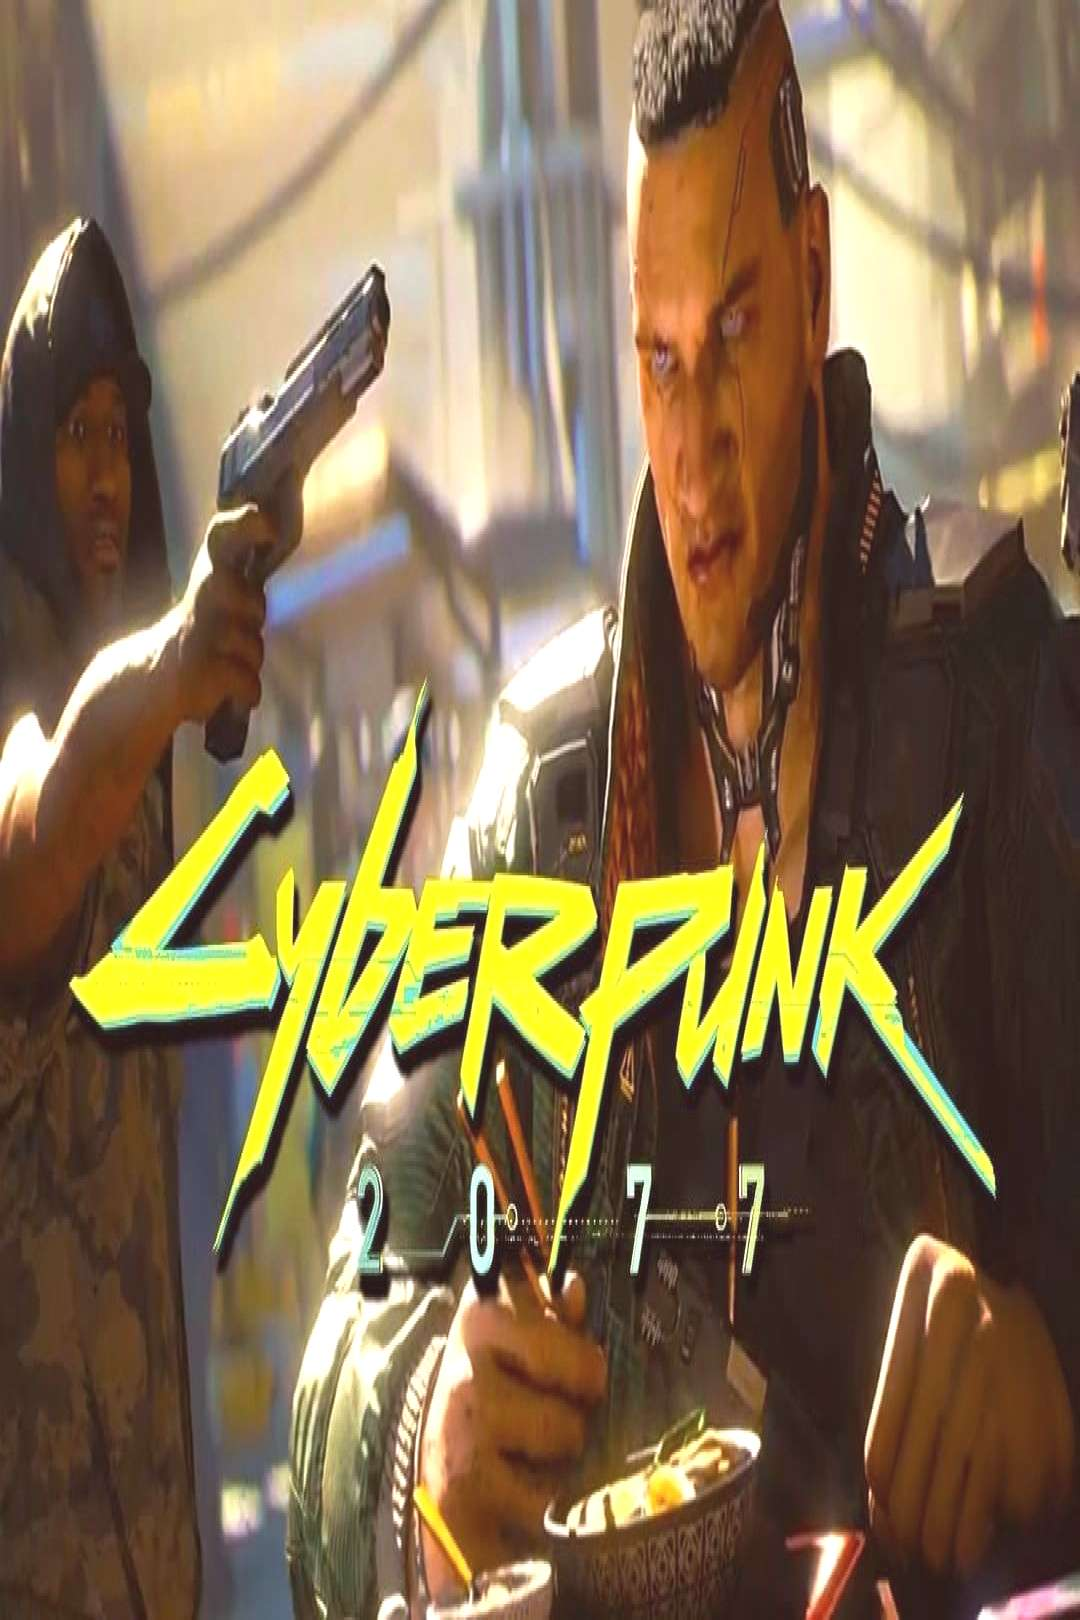 Microsoft Unveils Promotional Xbox One X For Cyberpunk 2077, But Is It Ultimately Worth It Or Not?